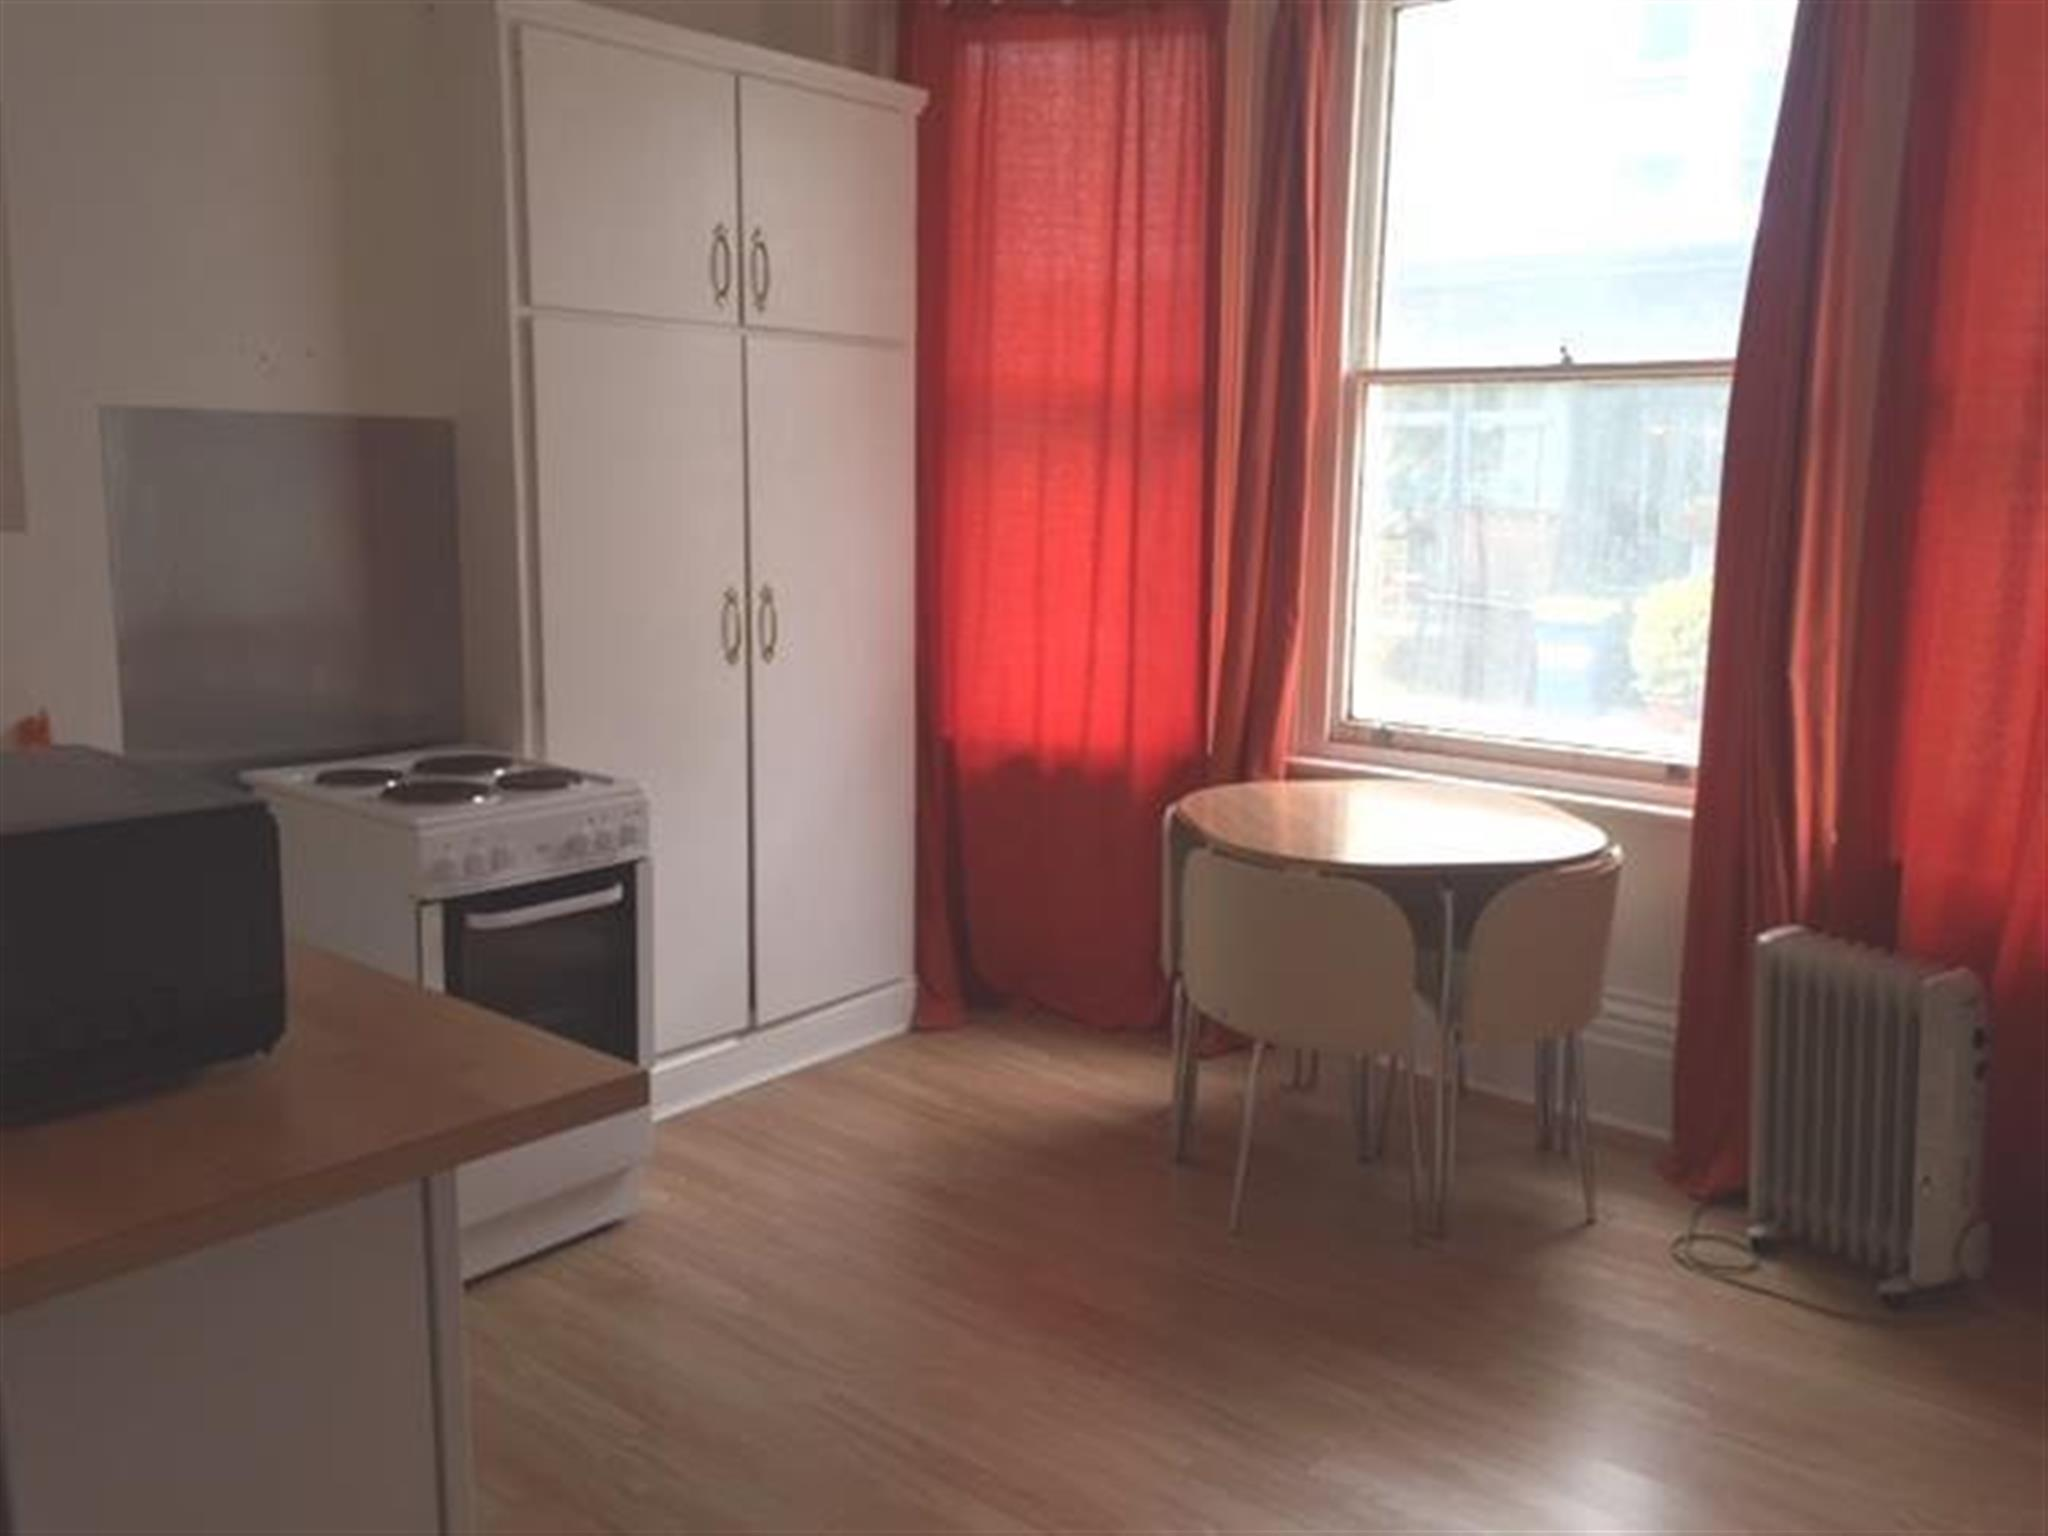 Apartment to rent charlotte street brighton bn2 1ag for Room to rent brighton